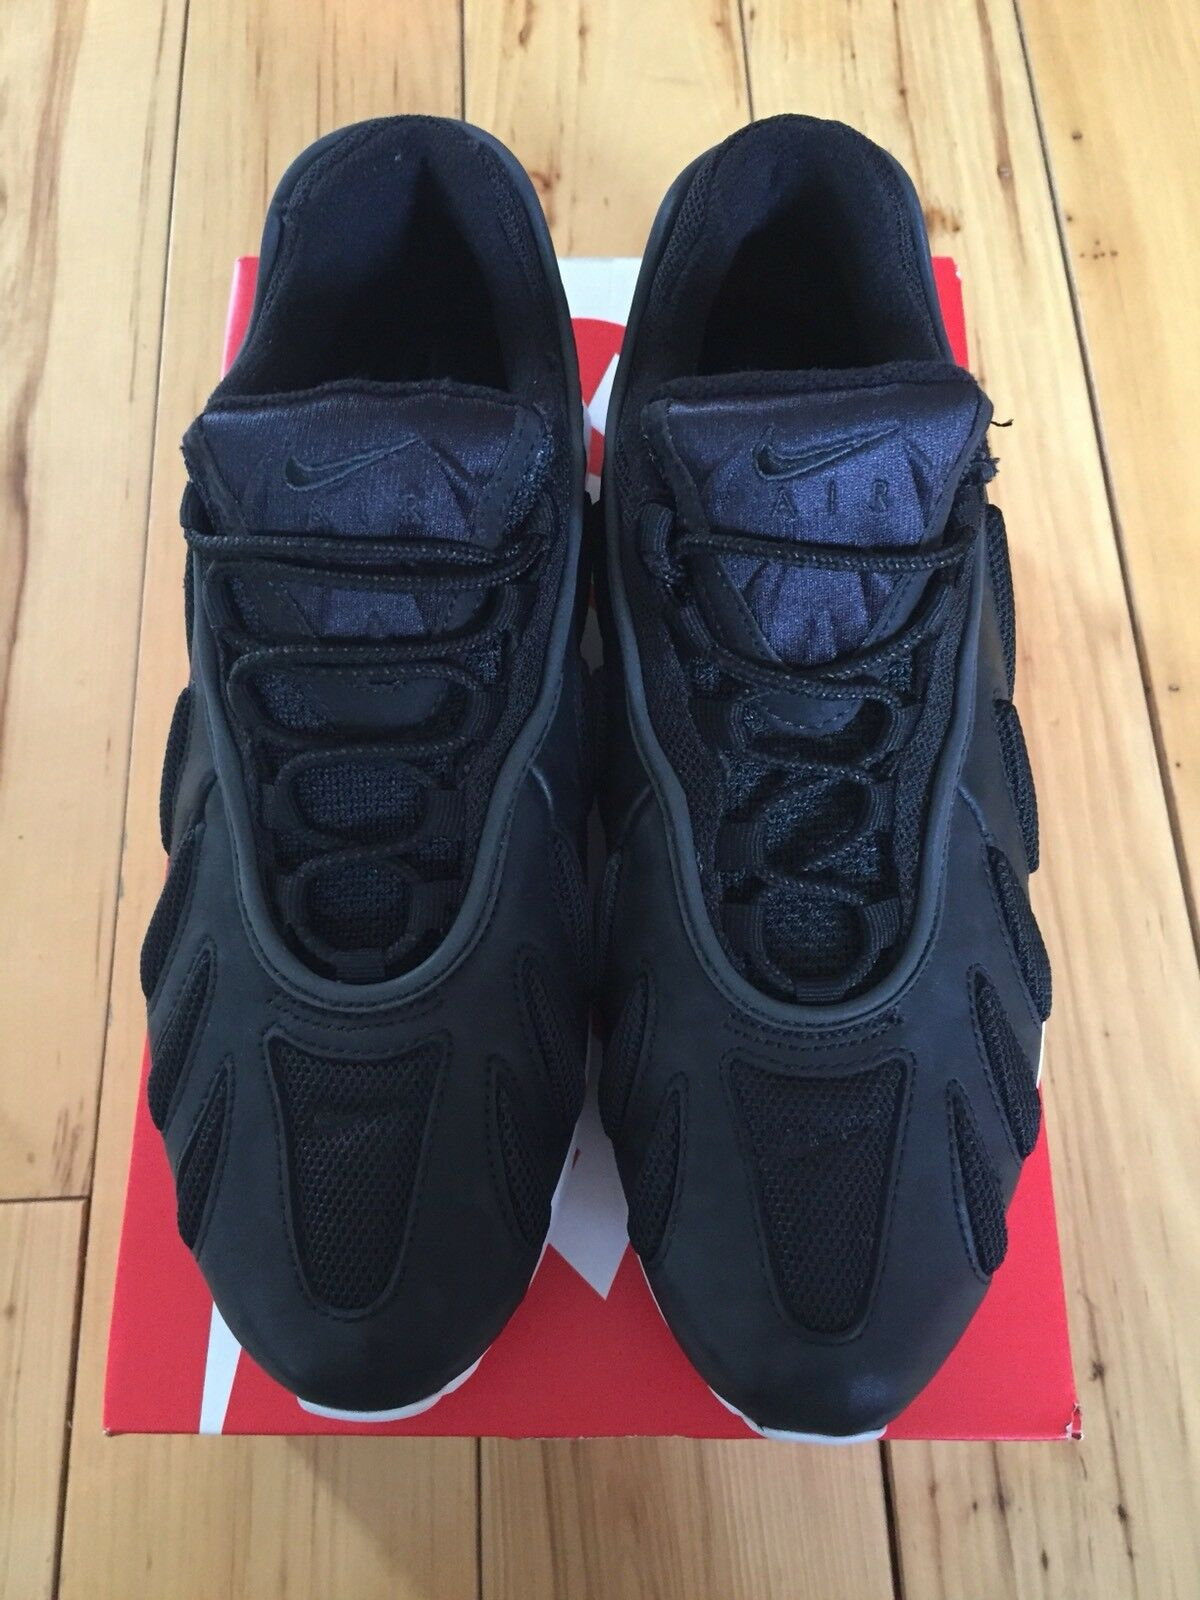 Nike Air Max 96 XX OG DS NikeLAB Retro Black-White 870165-002 US 9.5